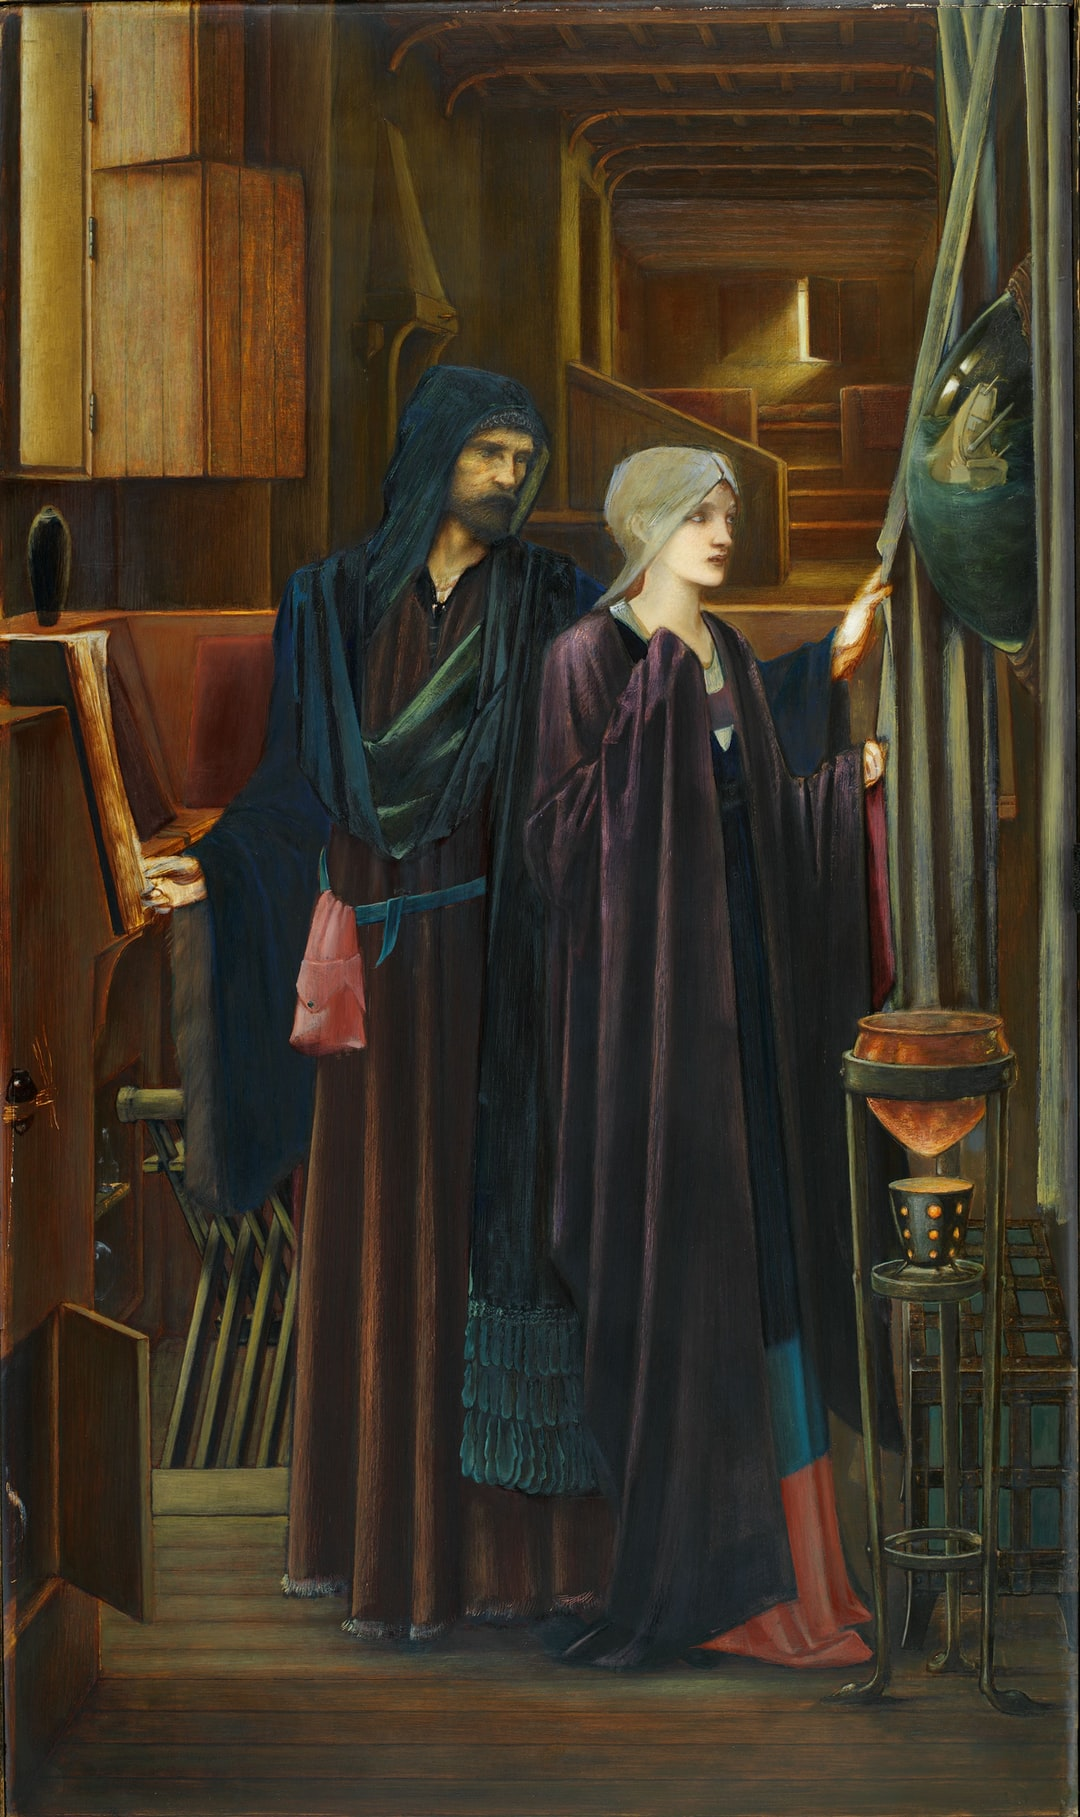 The Wizard, 1898. Two figures in a narrow, darkened chamber. A bearded man in a heavy robes, reveals a convex mirror to a young, veiled girl, behind a drape. Artist: Edward Burne-Jones